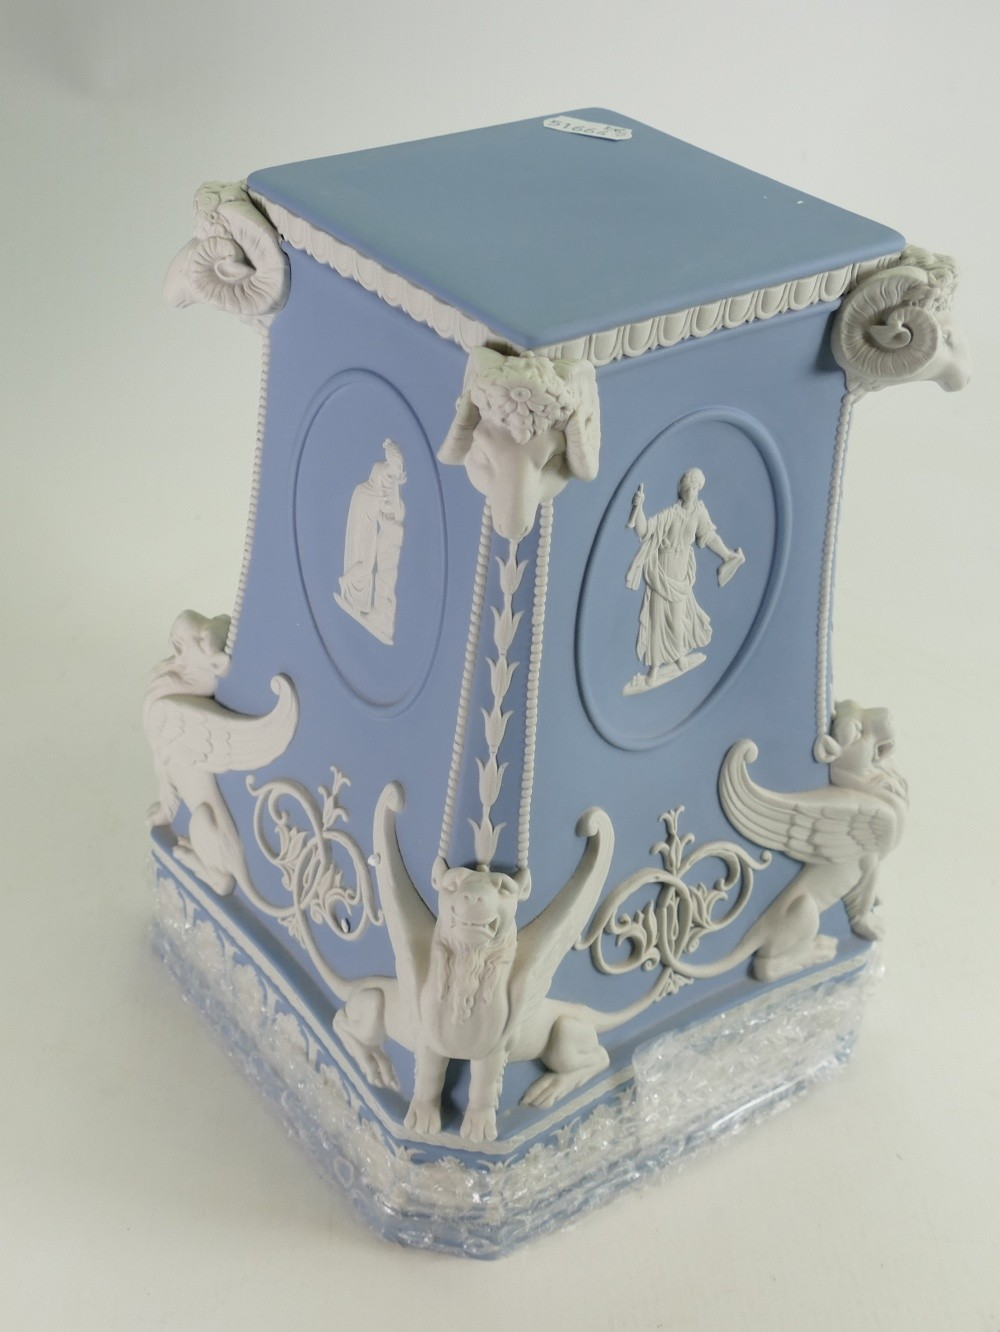 Wedgwood white on pale blue limited edition snake handled vase and stand: Height 71cm with - Image 3 of 6